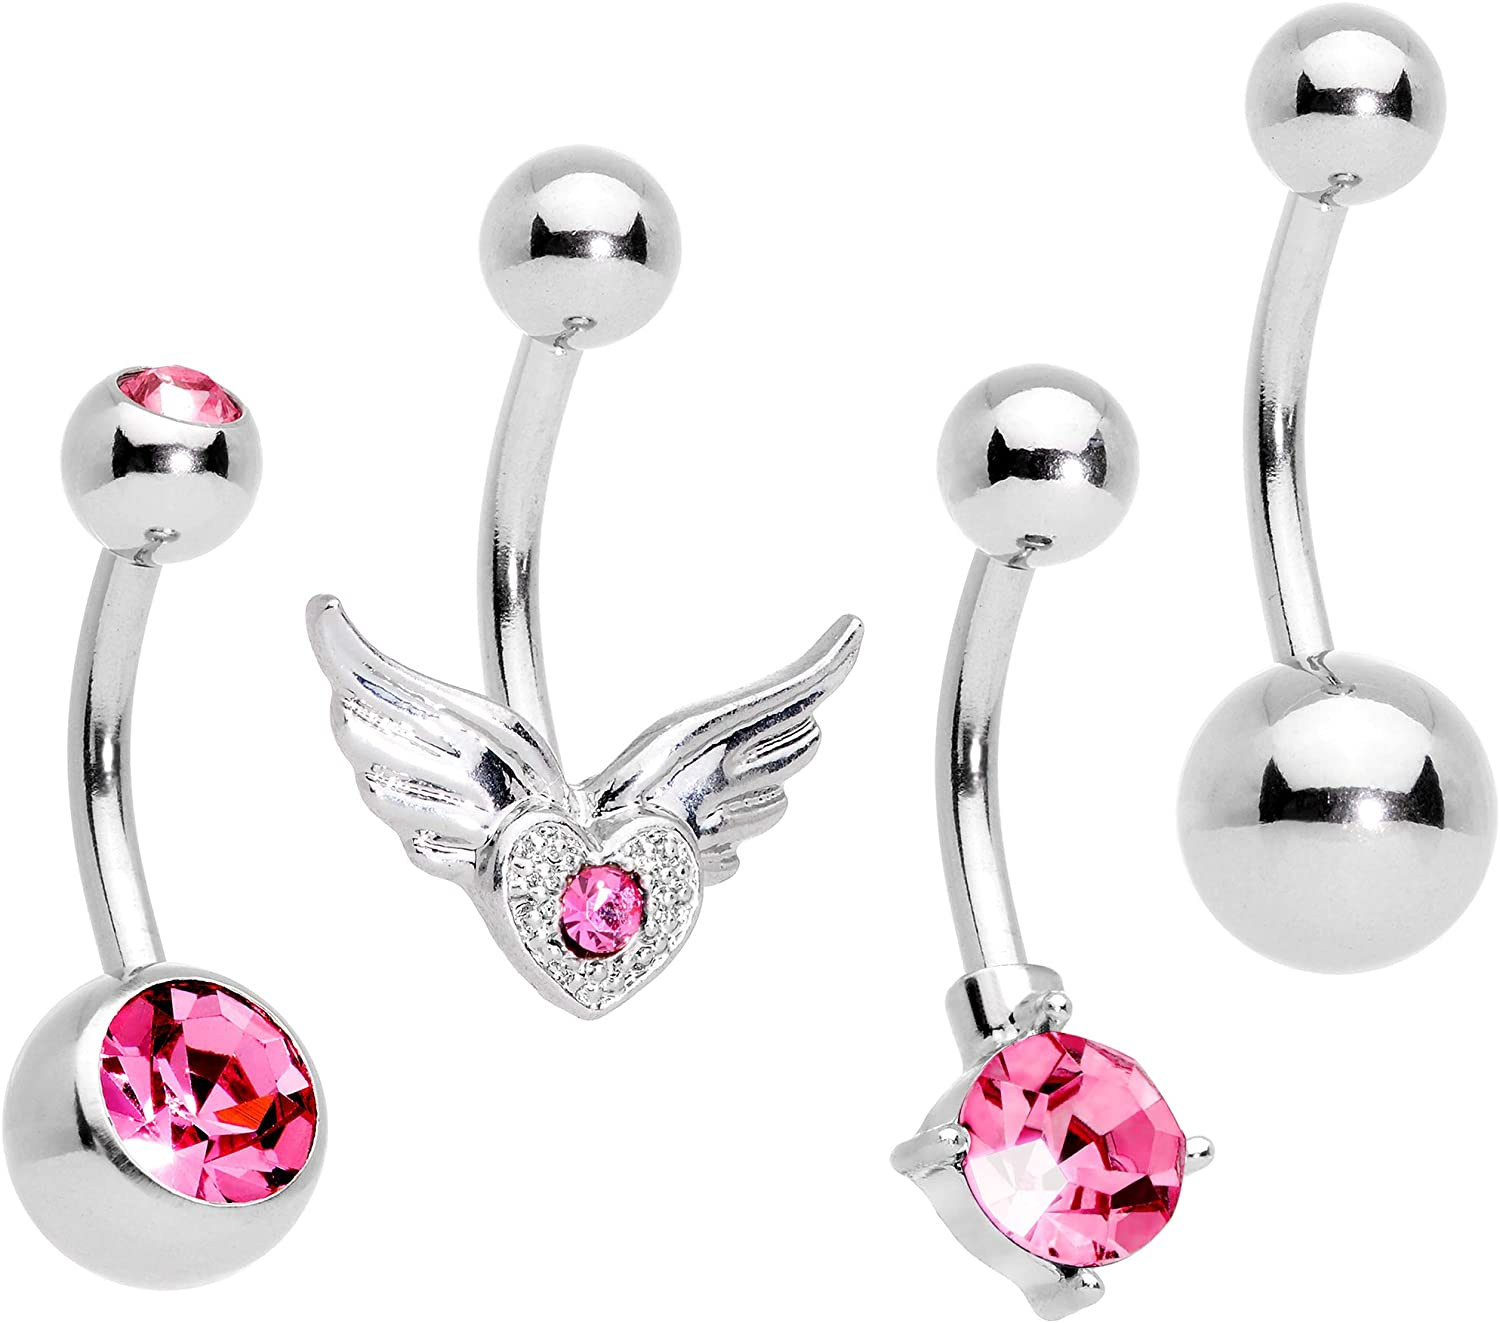 Body Candy 4PC 316L Steel Pink Accent Winged Heart Bonus Pack Belly Button Rings Navel Piercing Set of 4